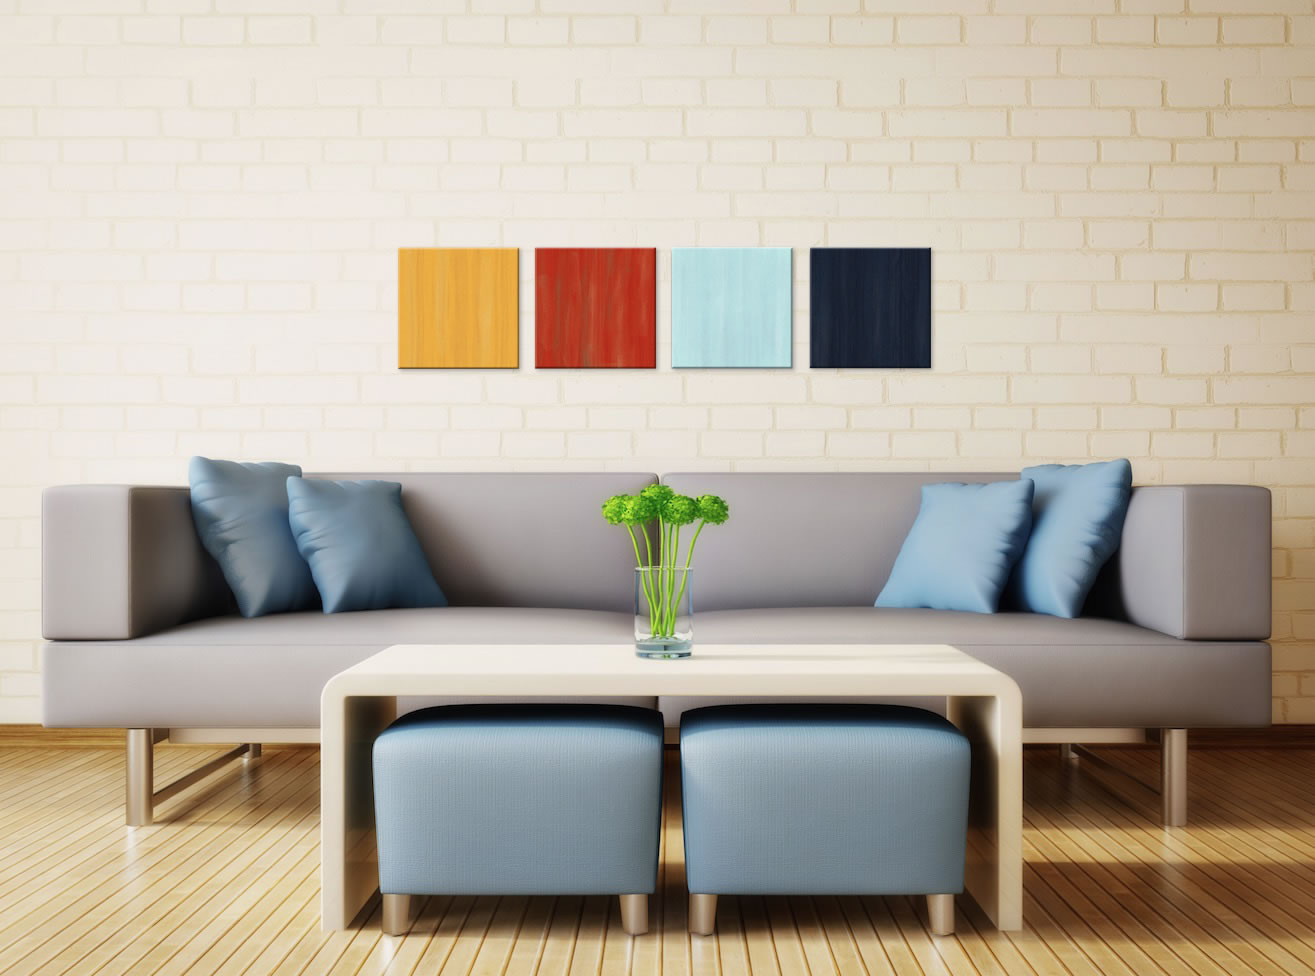 Hot and Cold - Colorful Contemporary Accents by Elana Reiter - Lifestyle Image